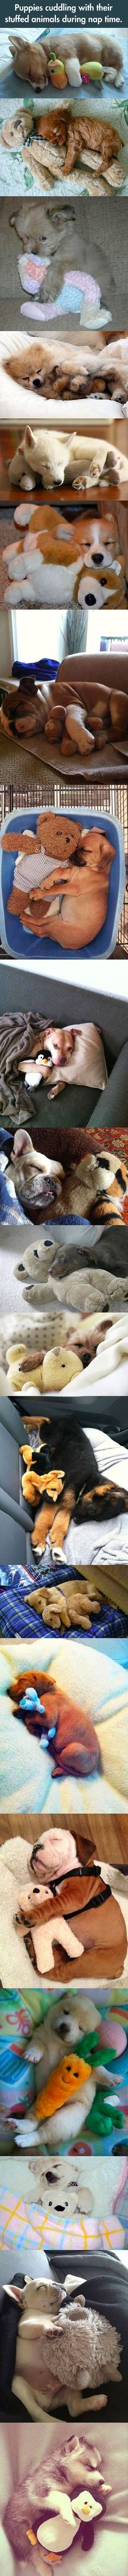 Adorable animals cuddling toys